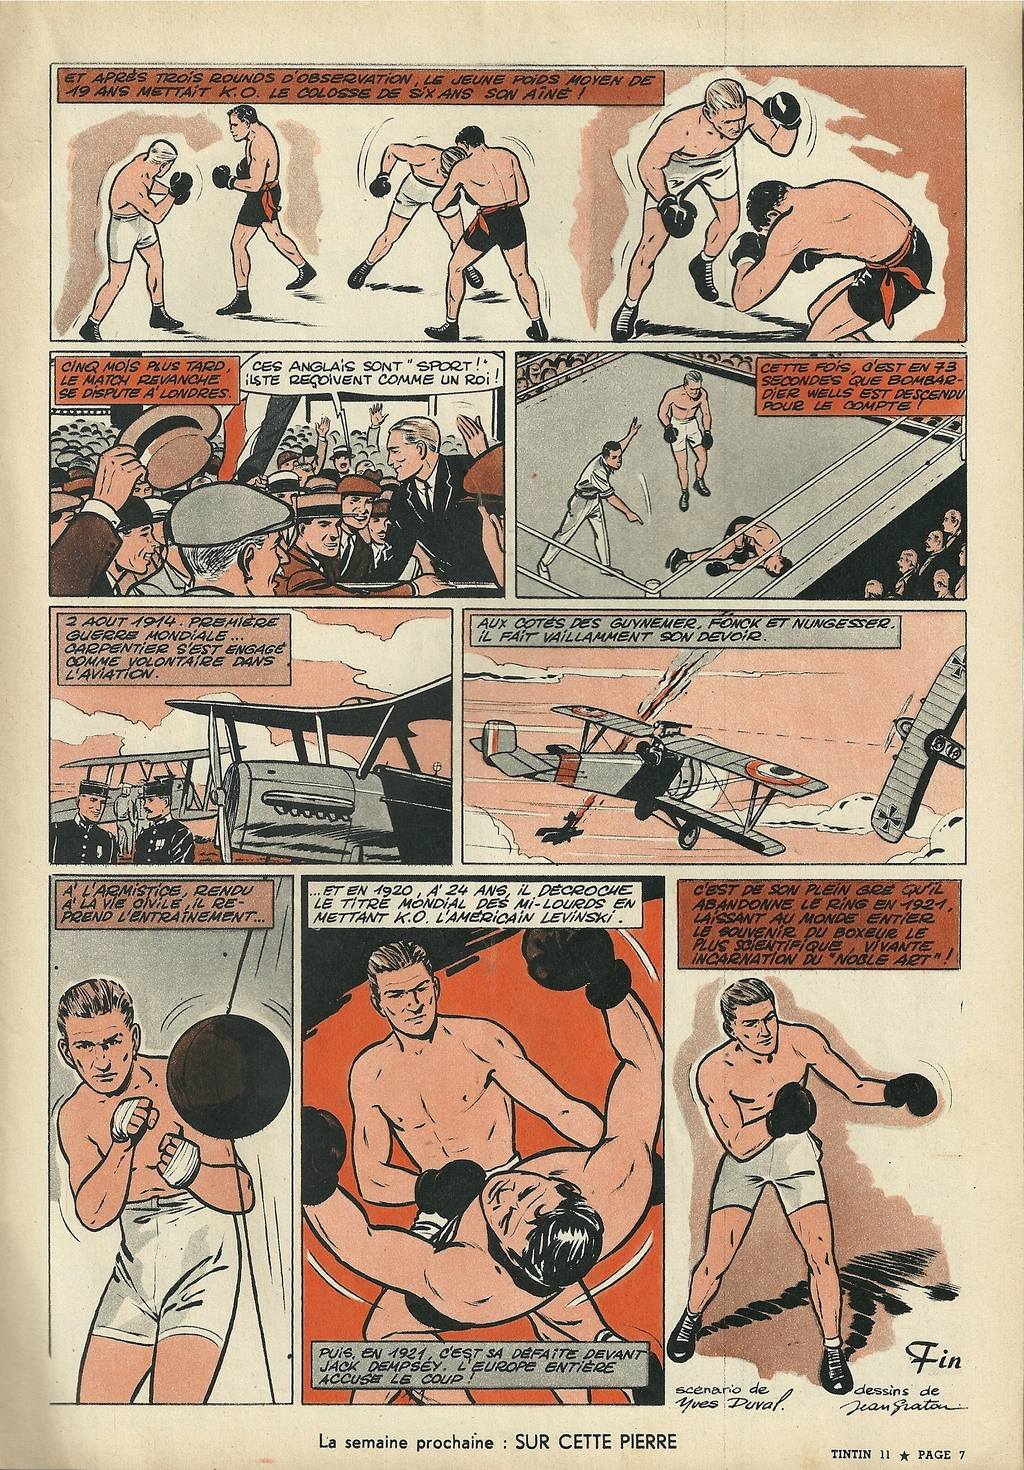 Georges Carpentier (4)